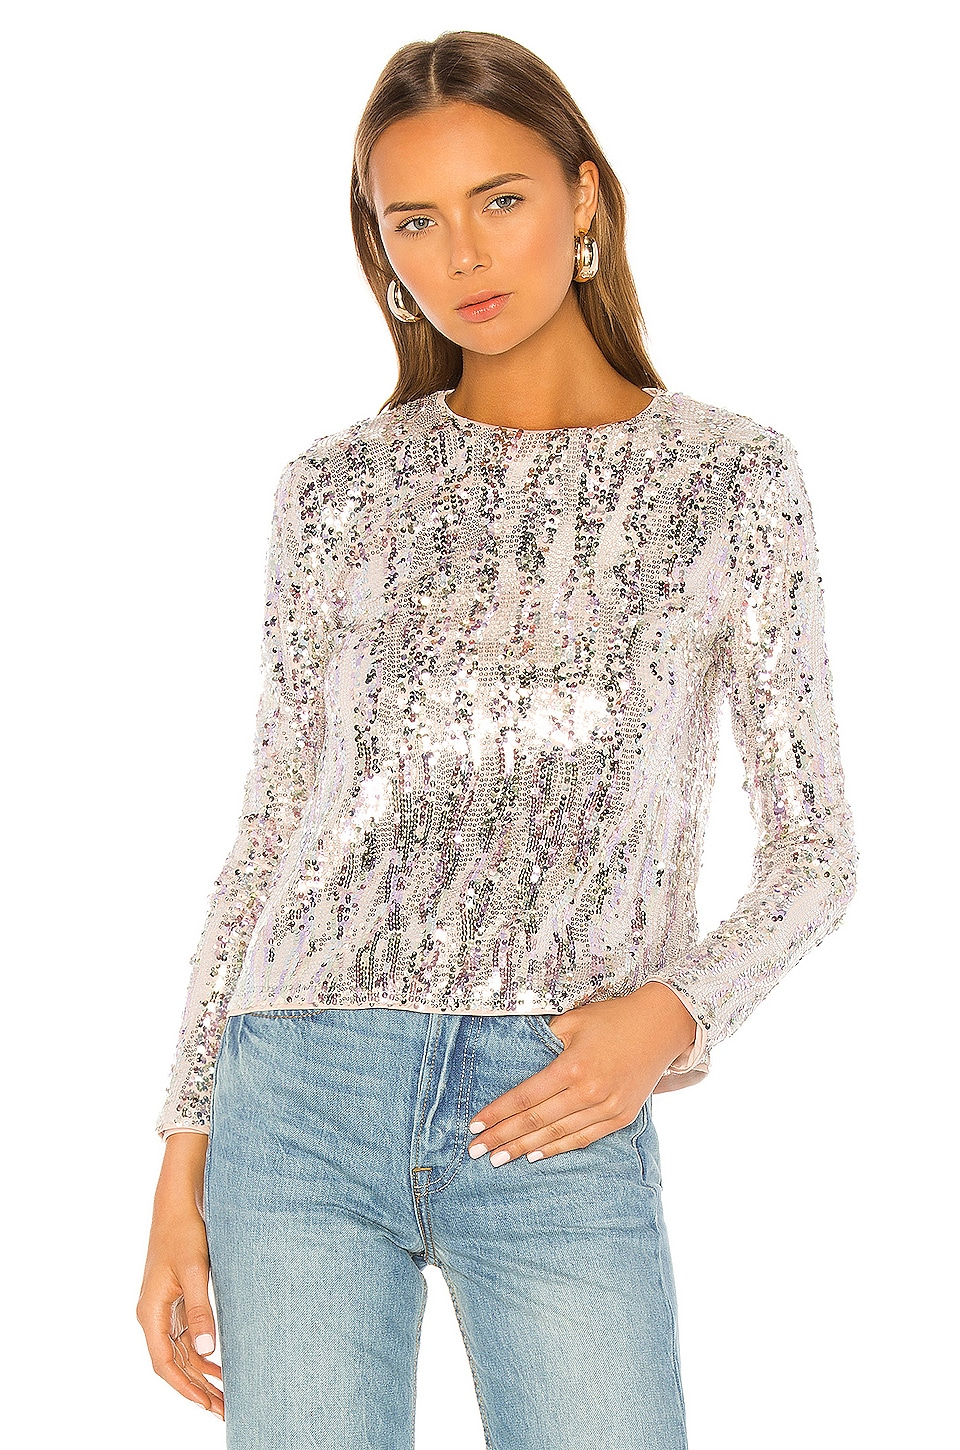 MAJORELLE Christiana Top in Shimmer Multi